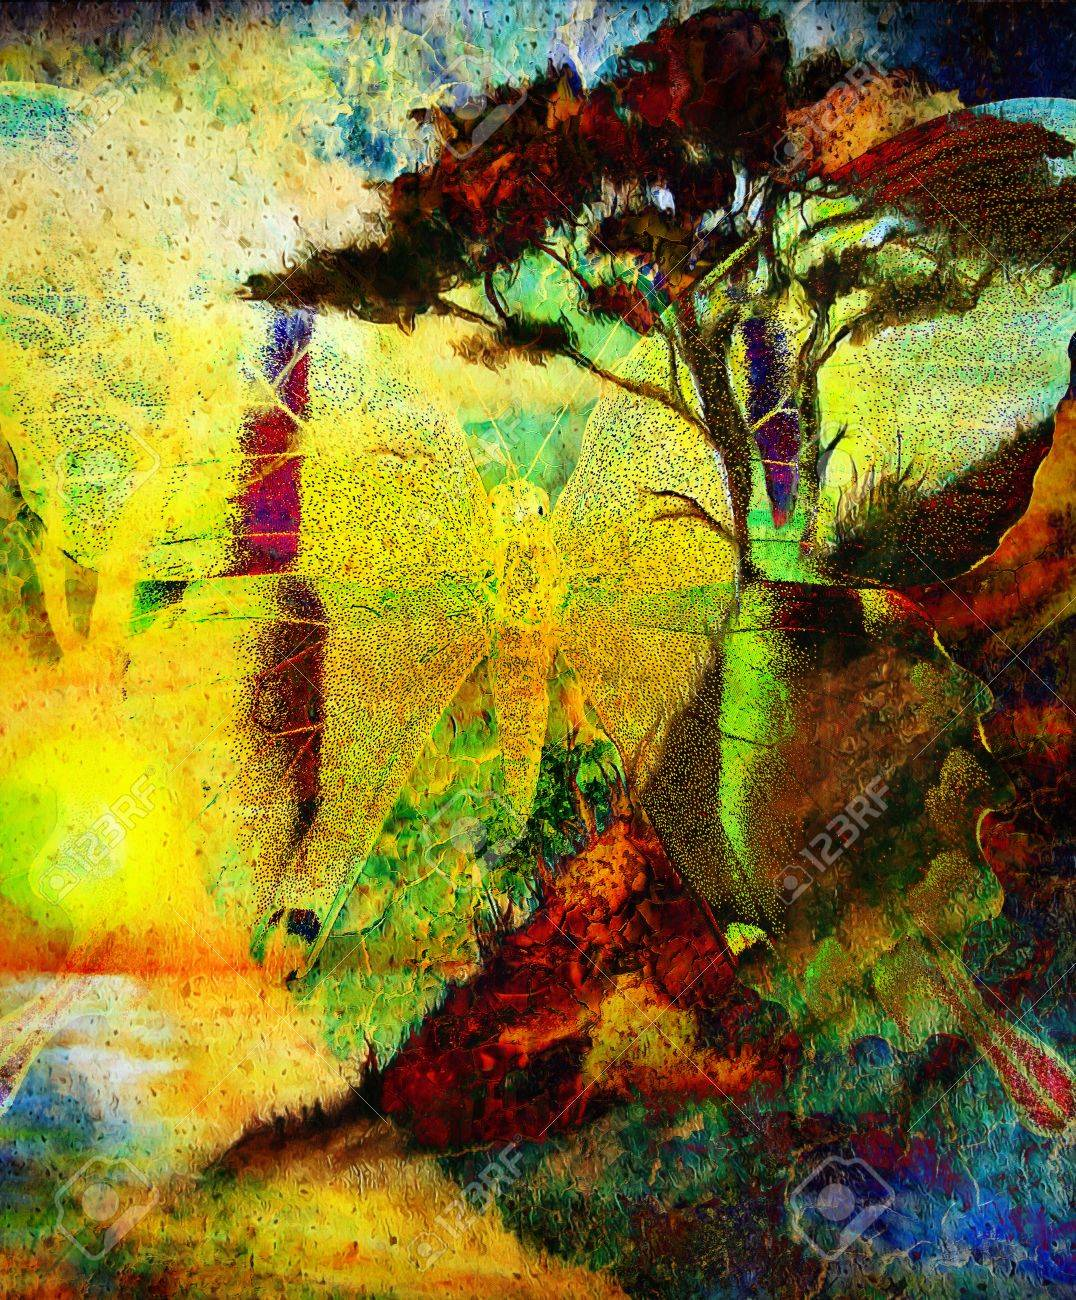 Painting Butterfly And Tree Wallpaper Landscape Color Collage Abstract Grunge Background With